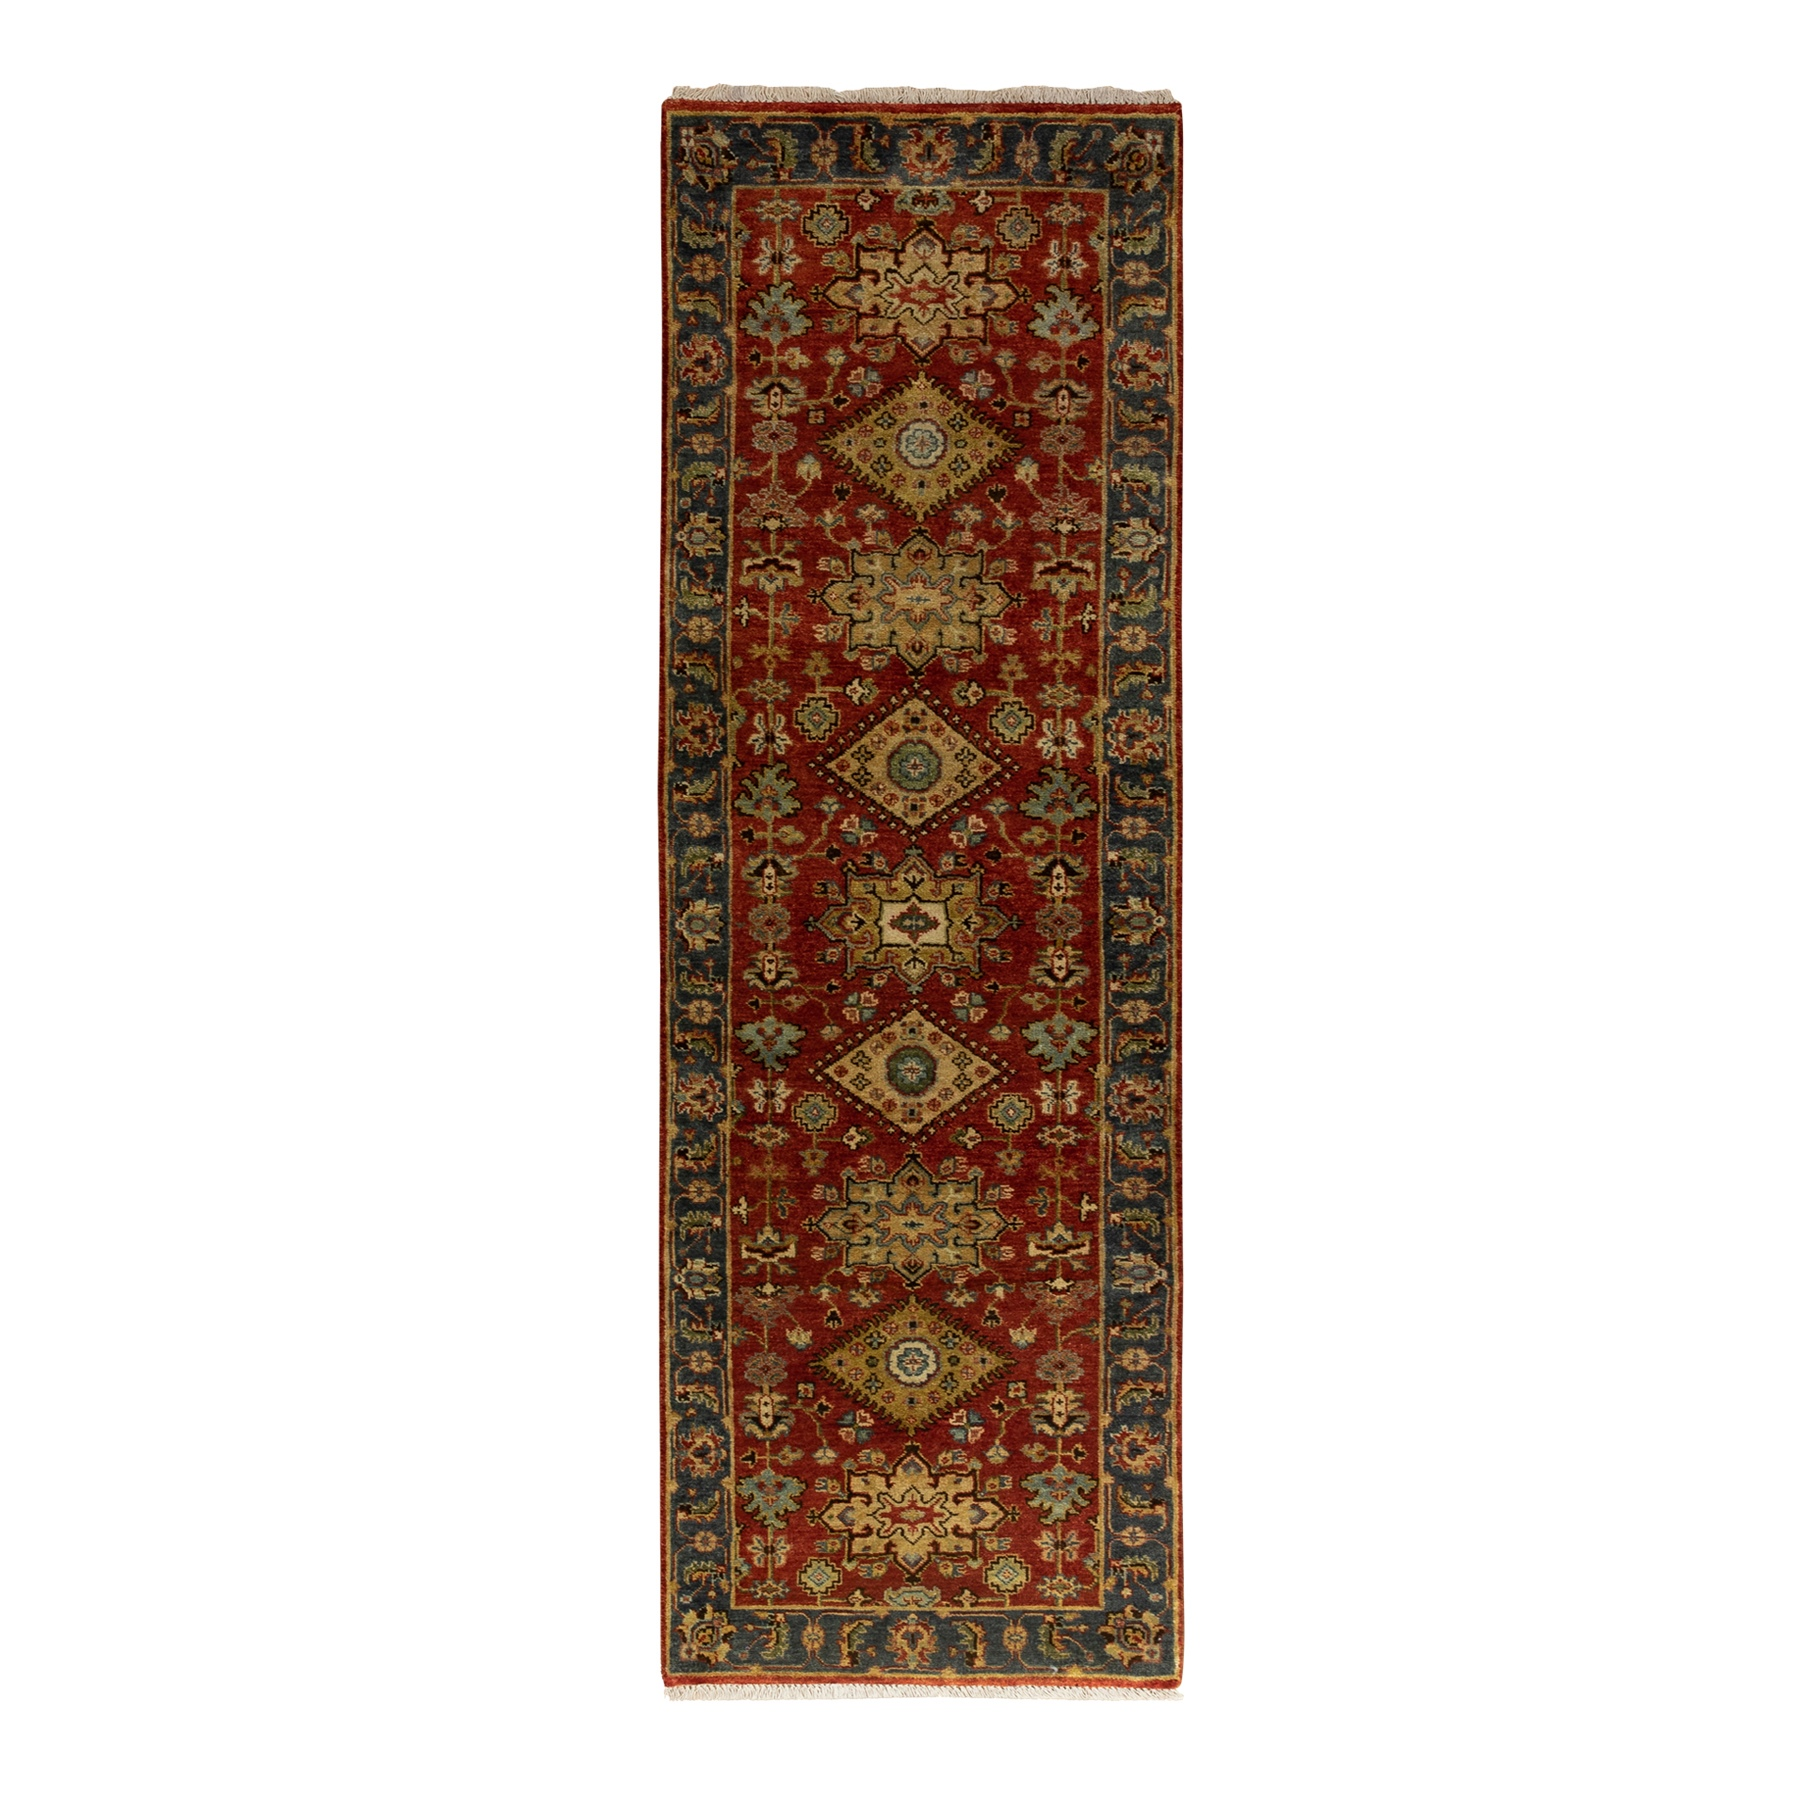 "2'5""x7'10"" Red Karajeh Design Pure Wool Hand Knotted Oriental Runner Rug"